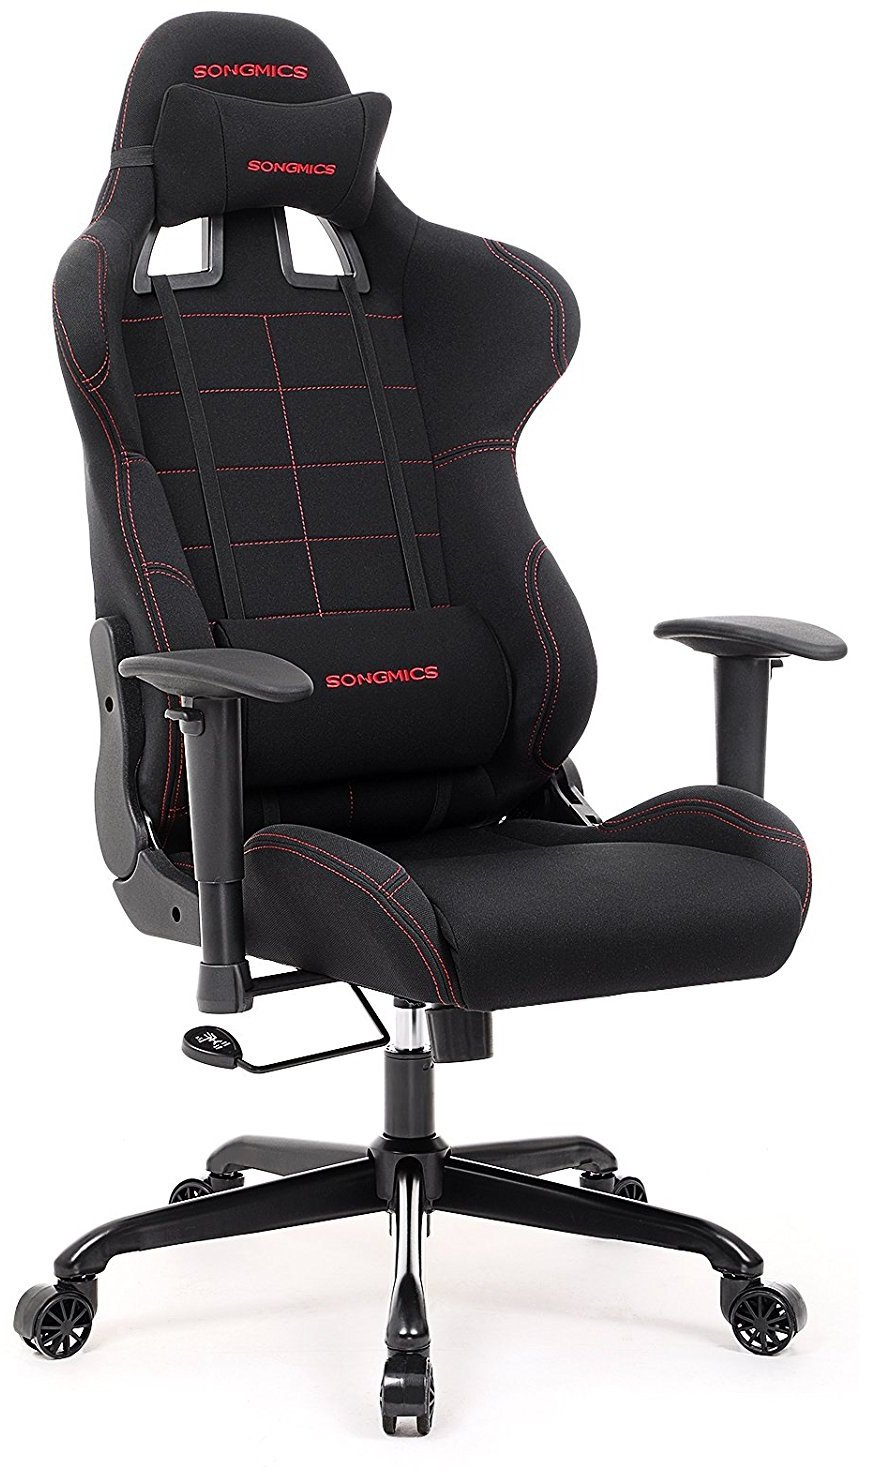 lcs gaming chair hammock swing chairs best top 20 pc to buy in 2019 image of black and red from songmics